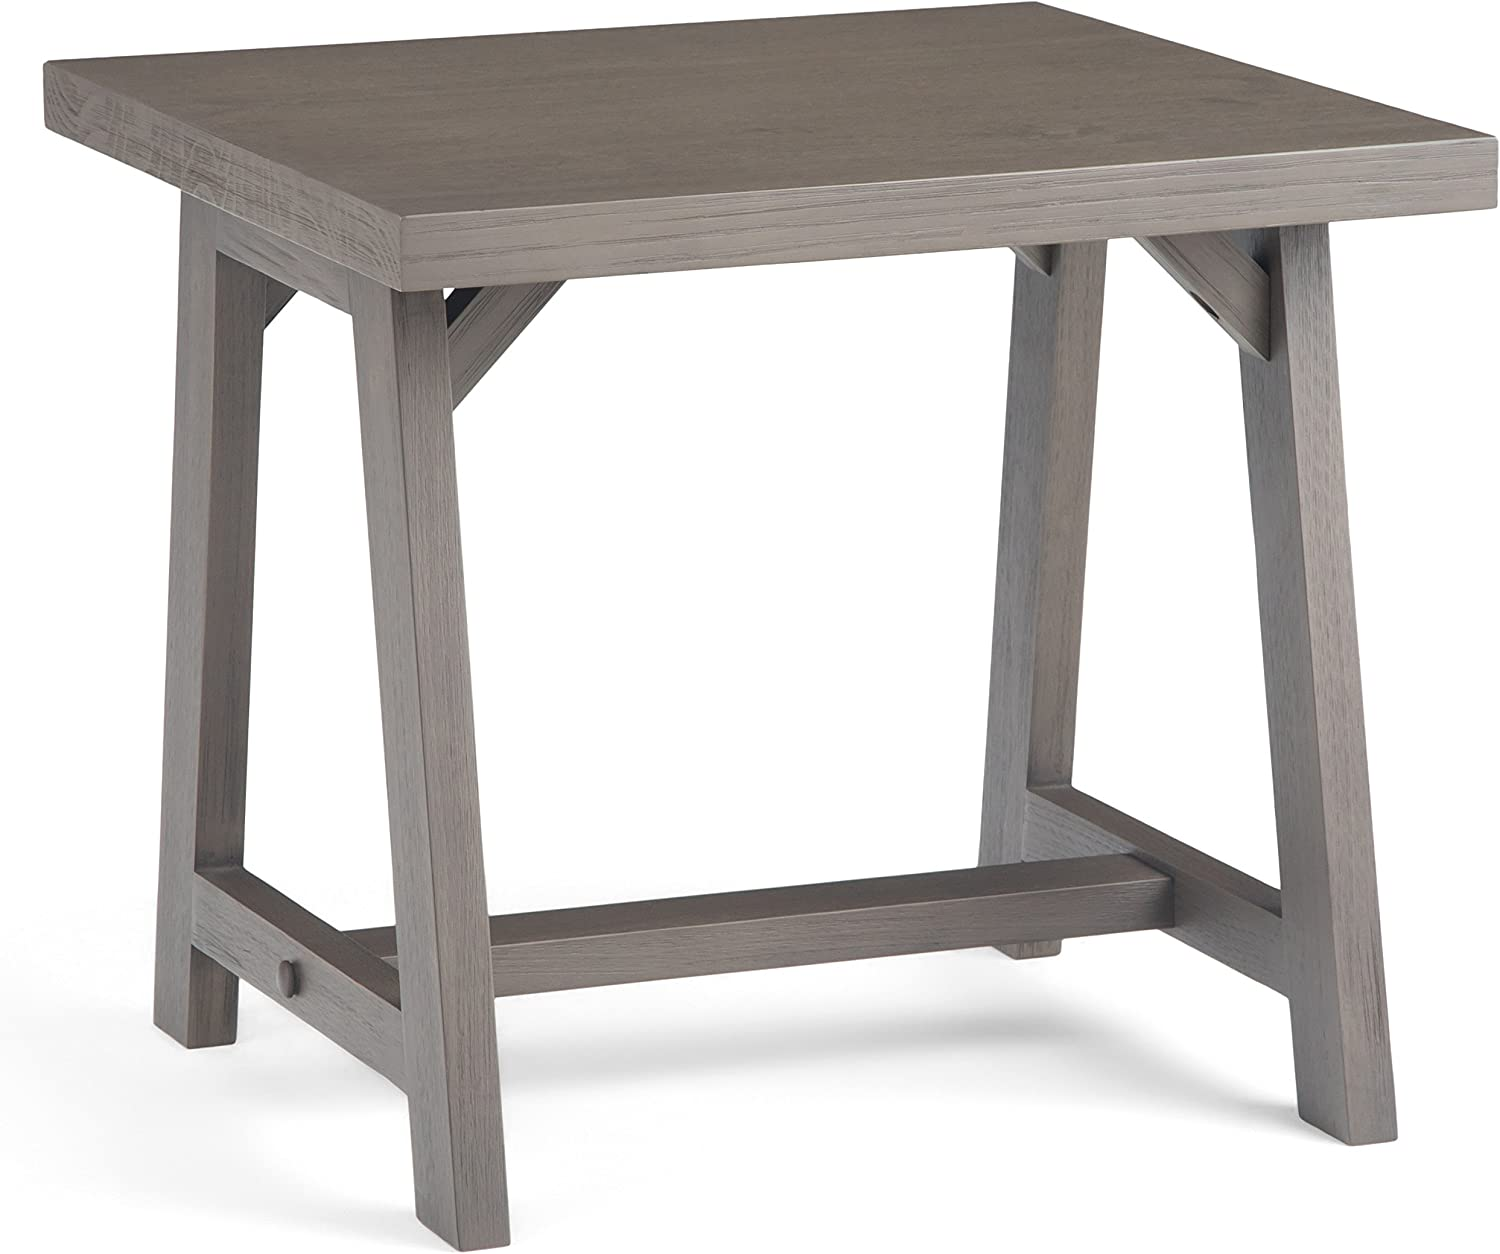 Simpli Home 3AXCSAW-02-FG Sawhorse Solid Wood 22 inch Wide Square Modern Industrial End Side Table in Farmhouse Grey